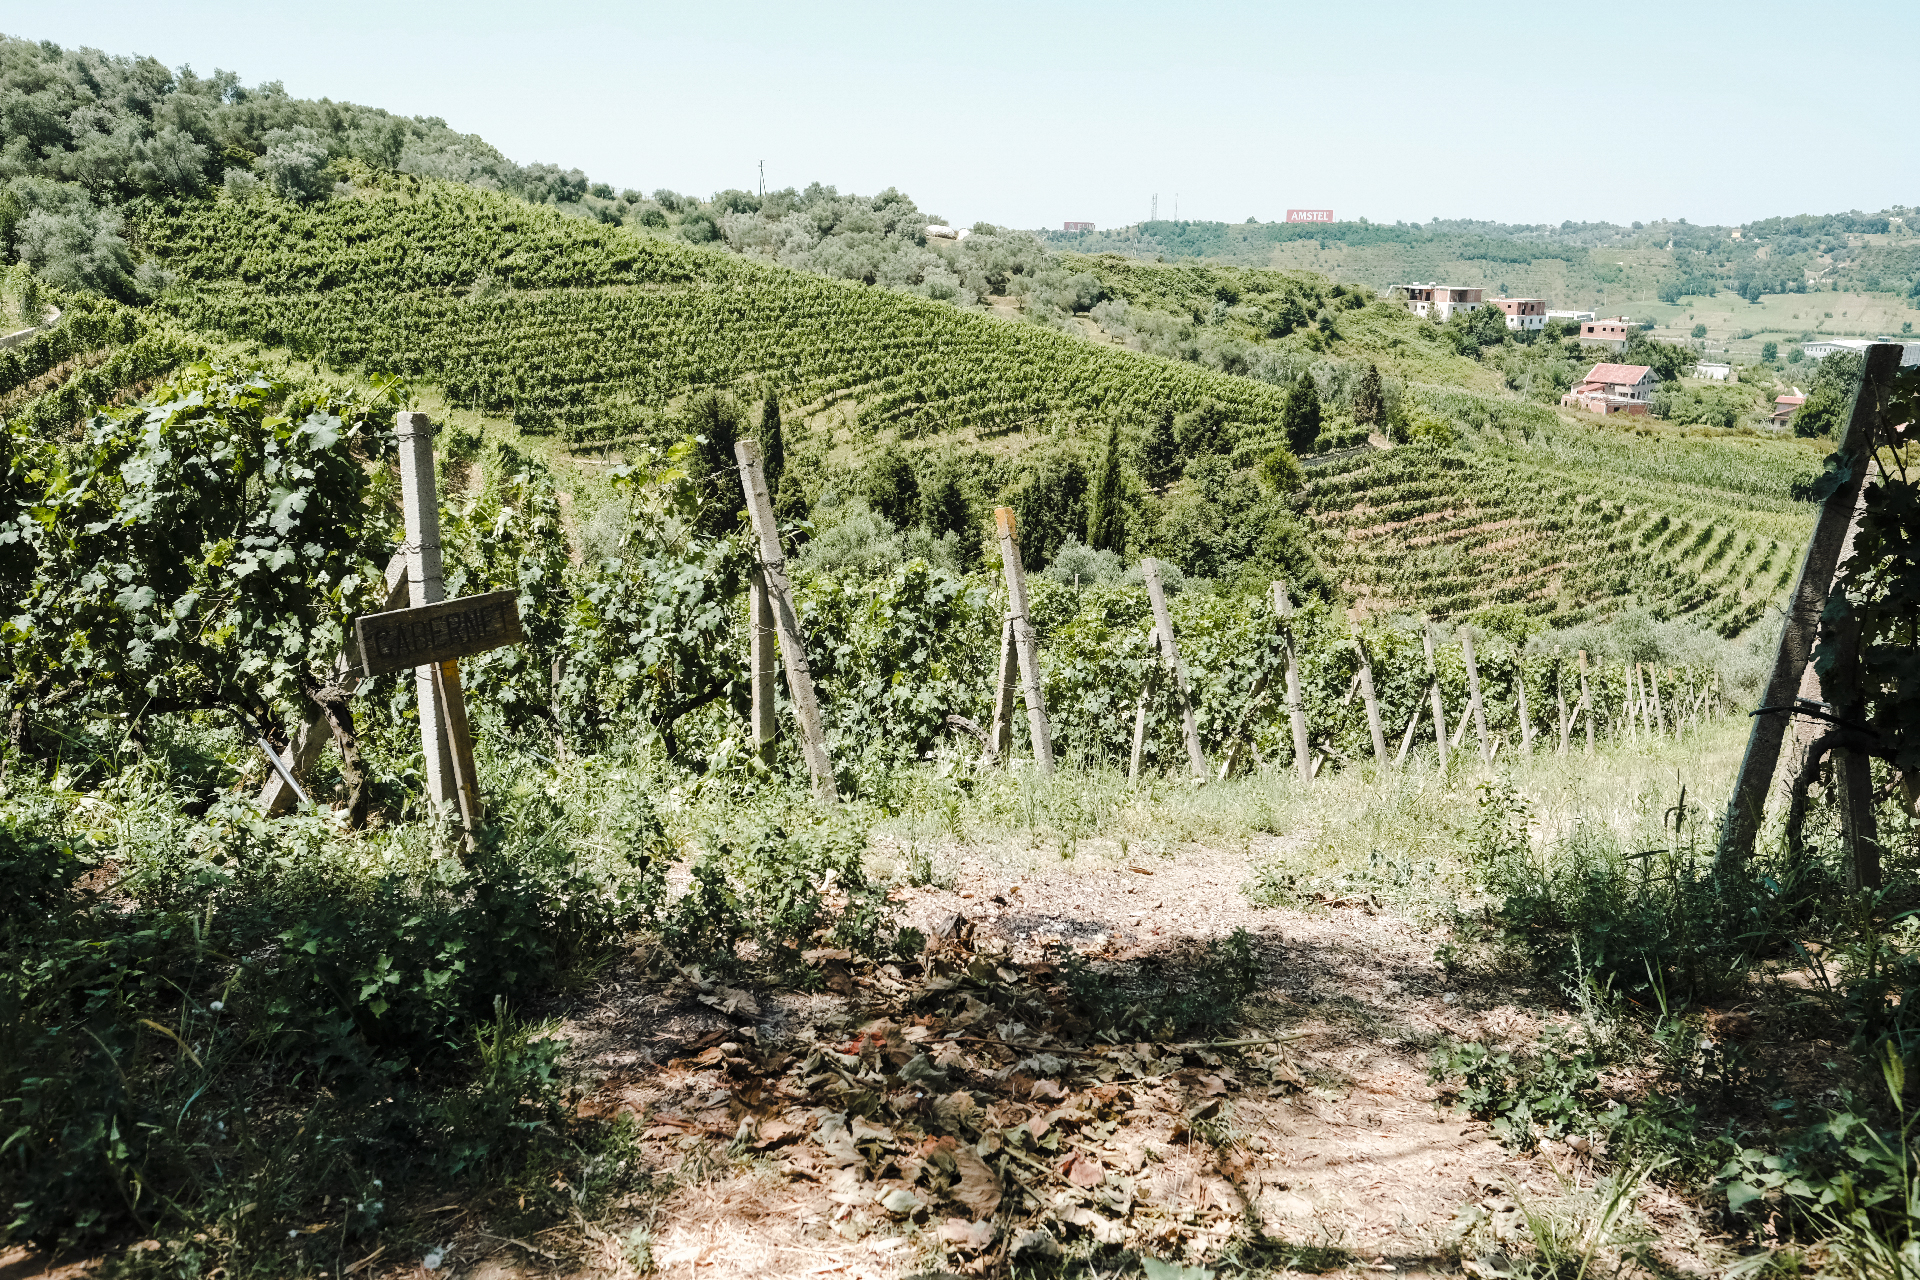 Vines planted in the hill, the center of Albania.